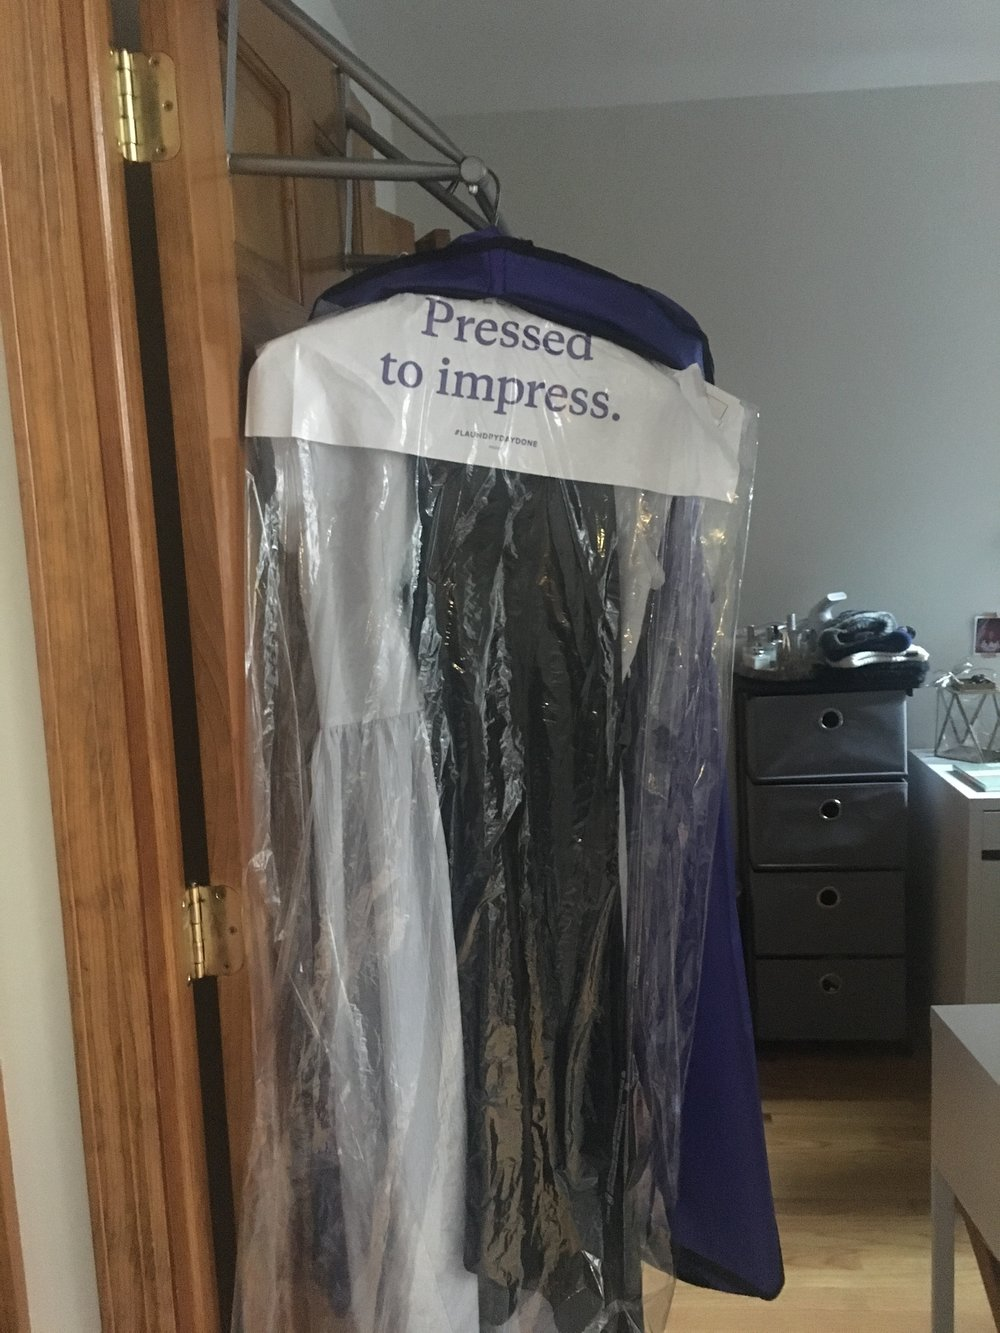 My beautiful dry cleaning featuring their purple bag!